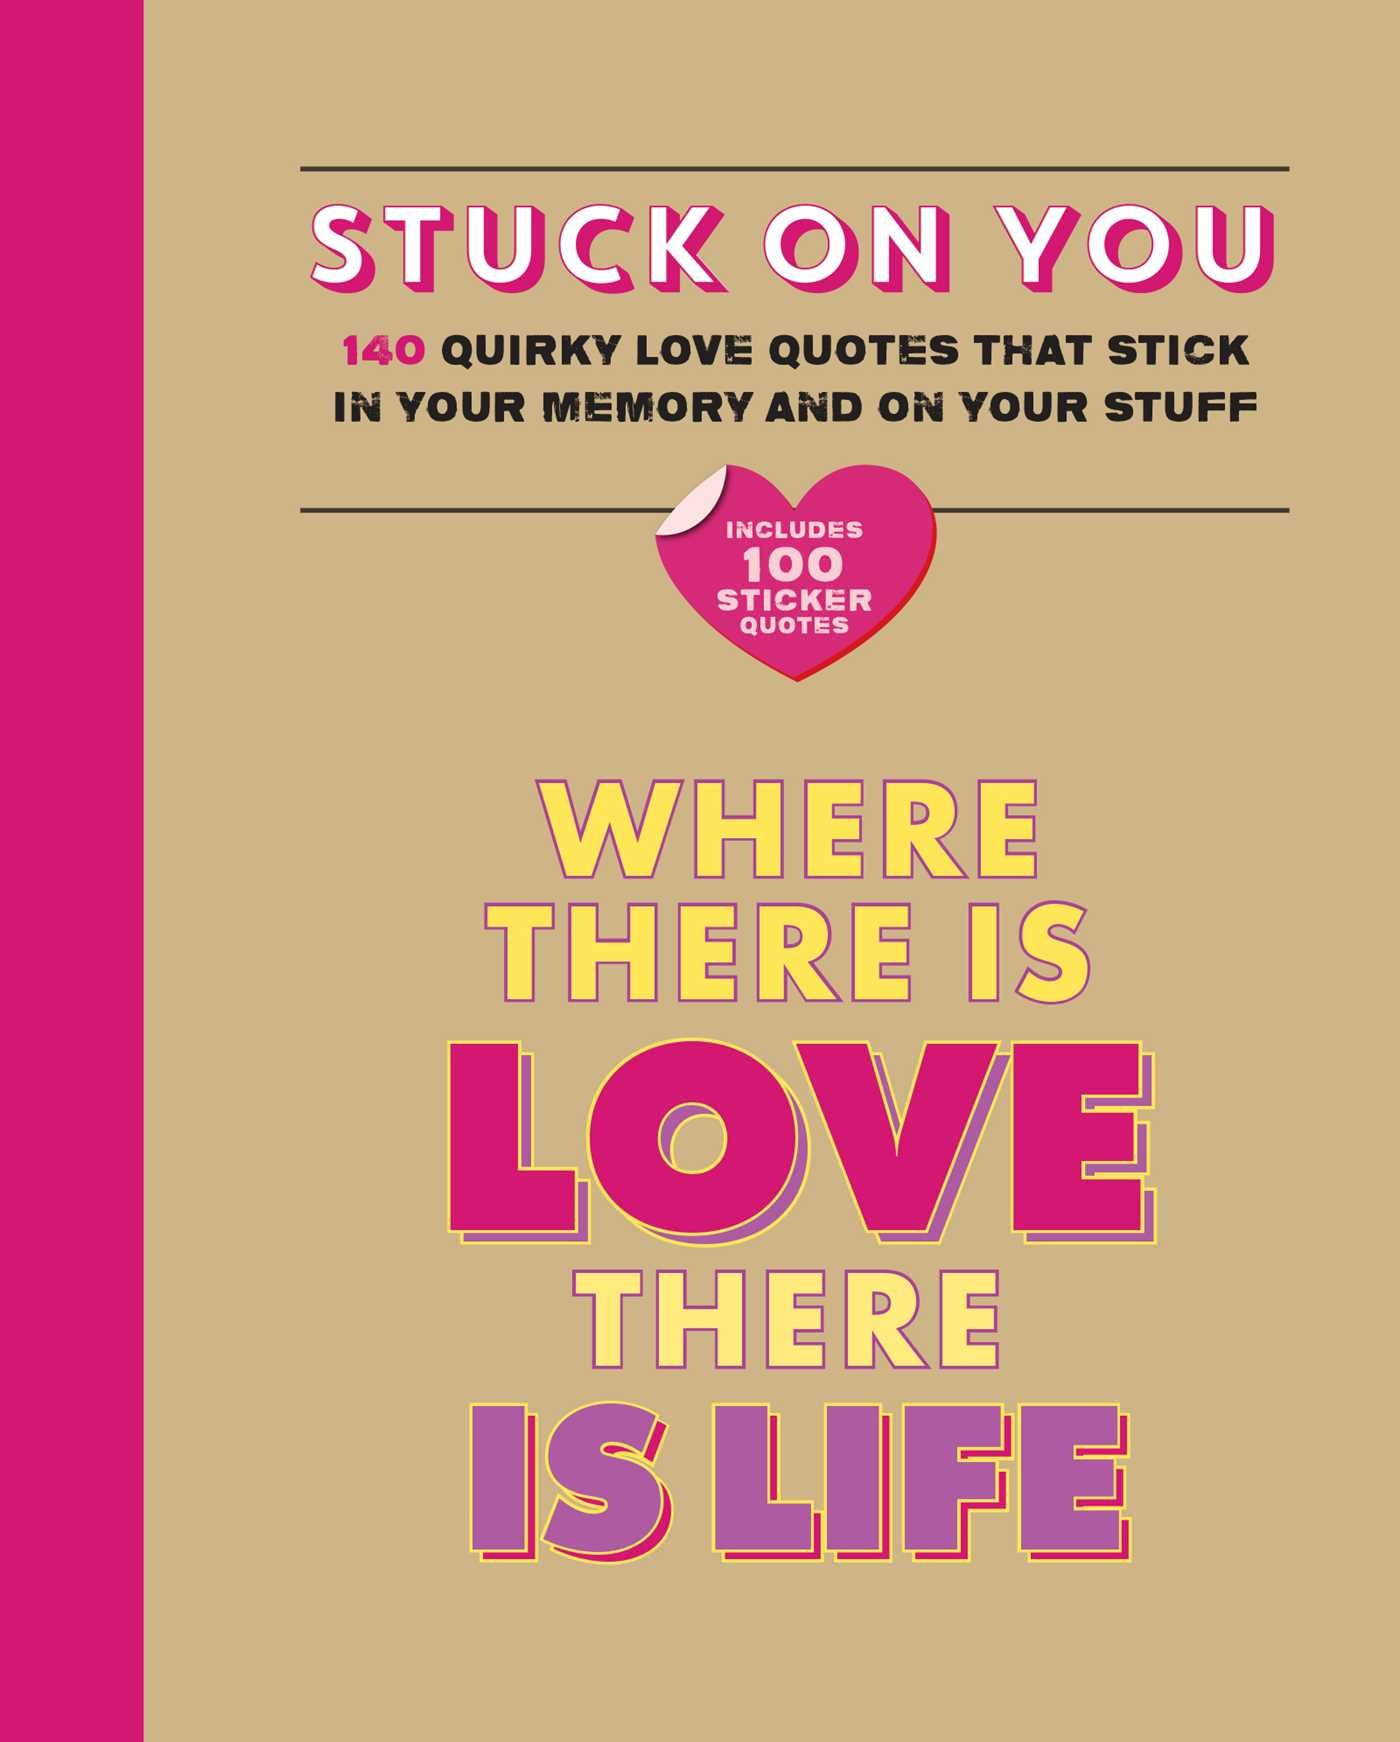 Stuck on You: 140 quirky love quotes that stick in your